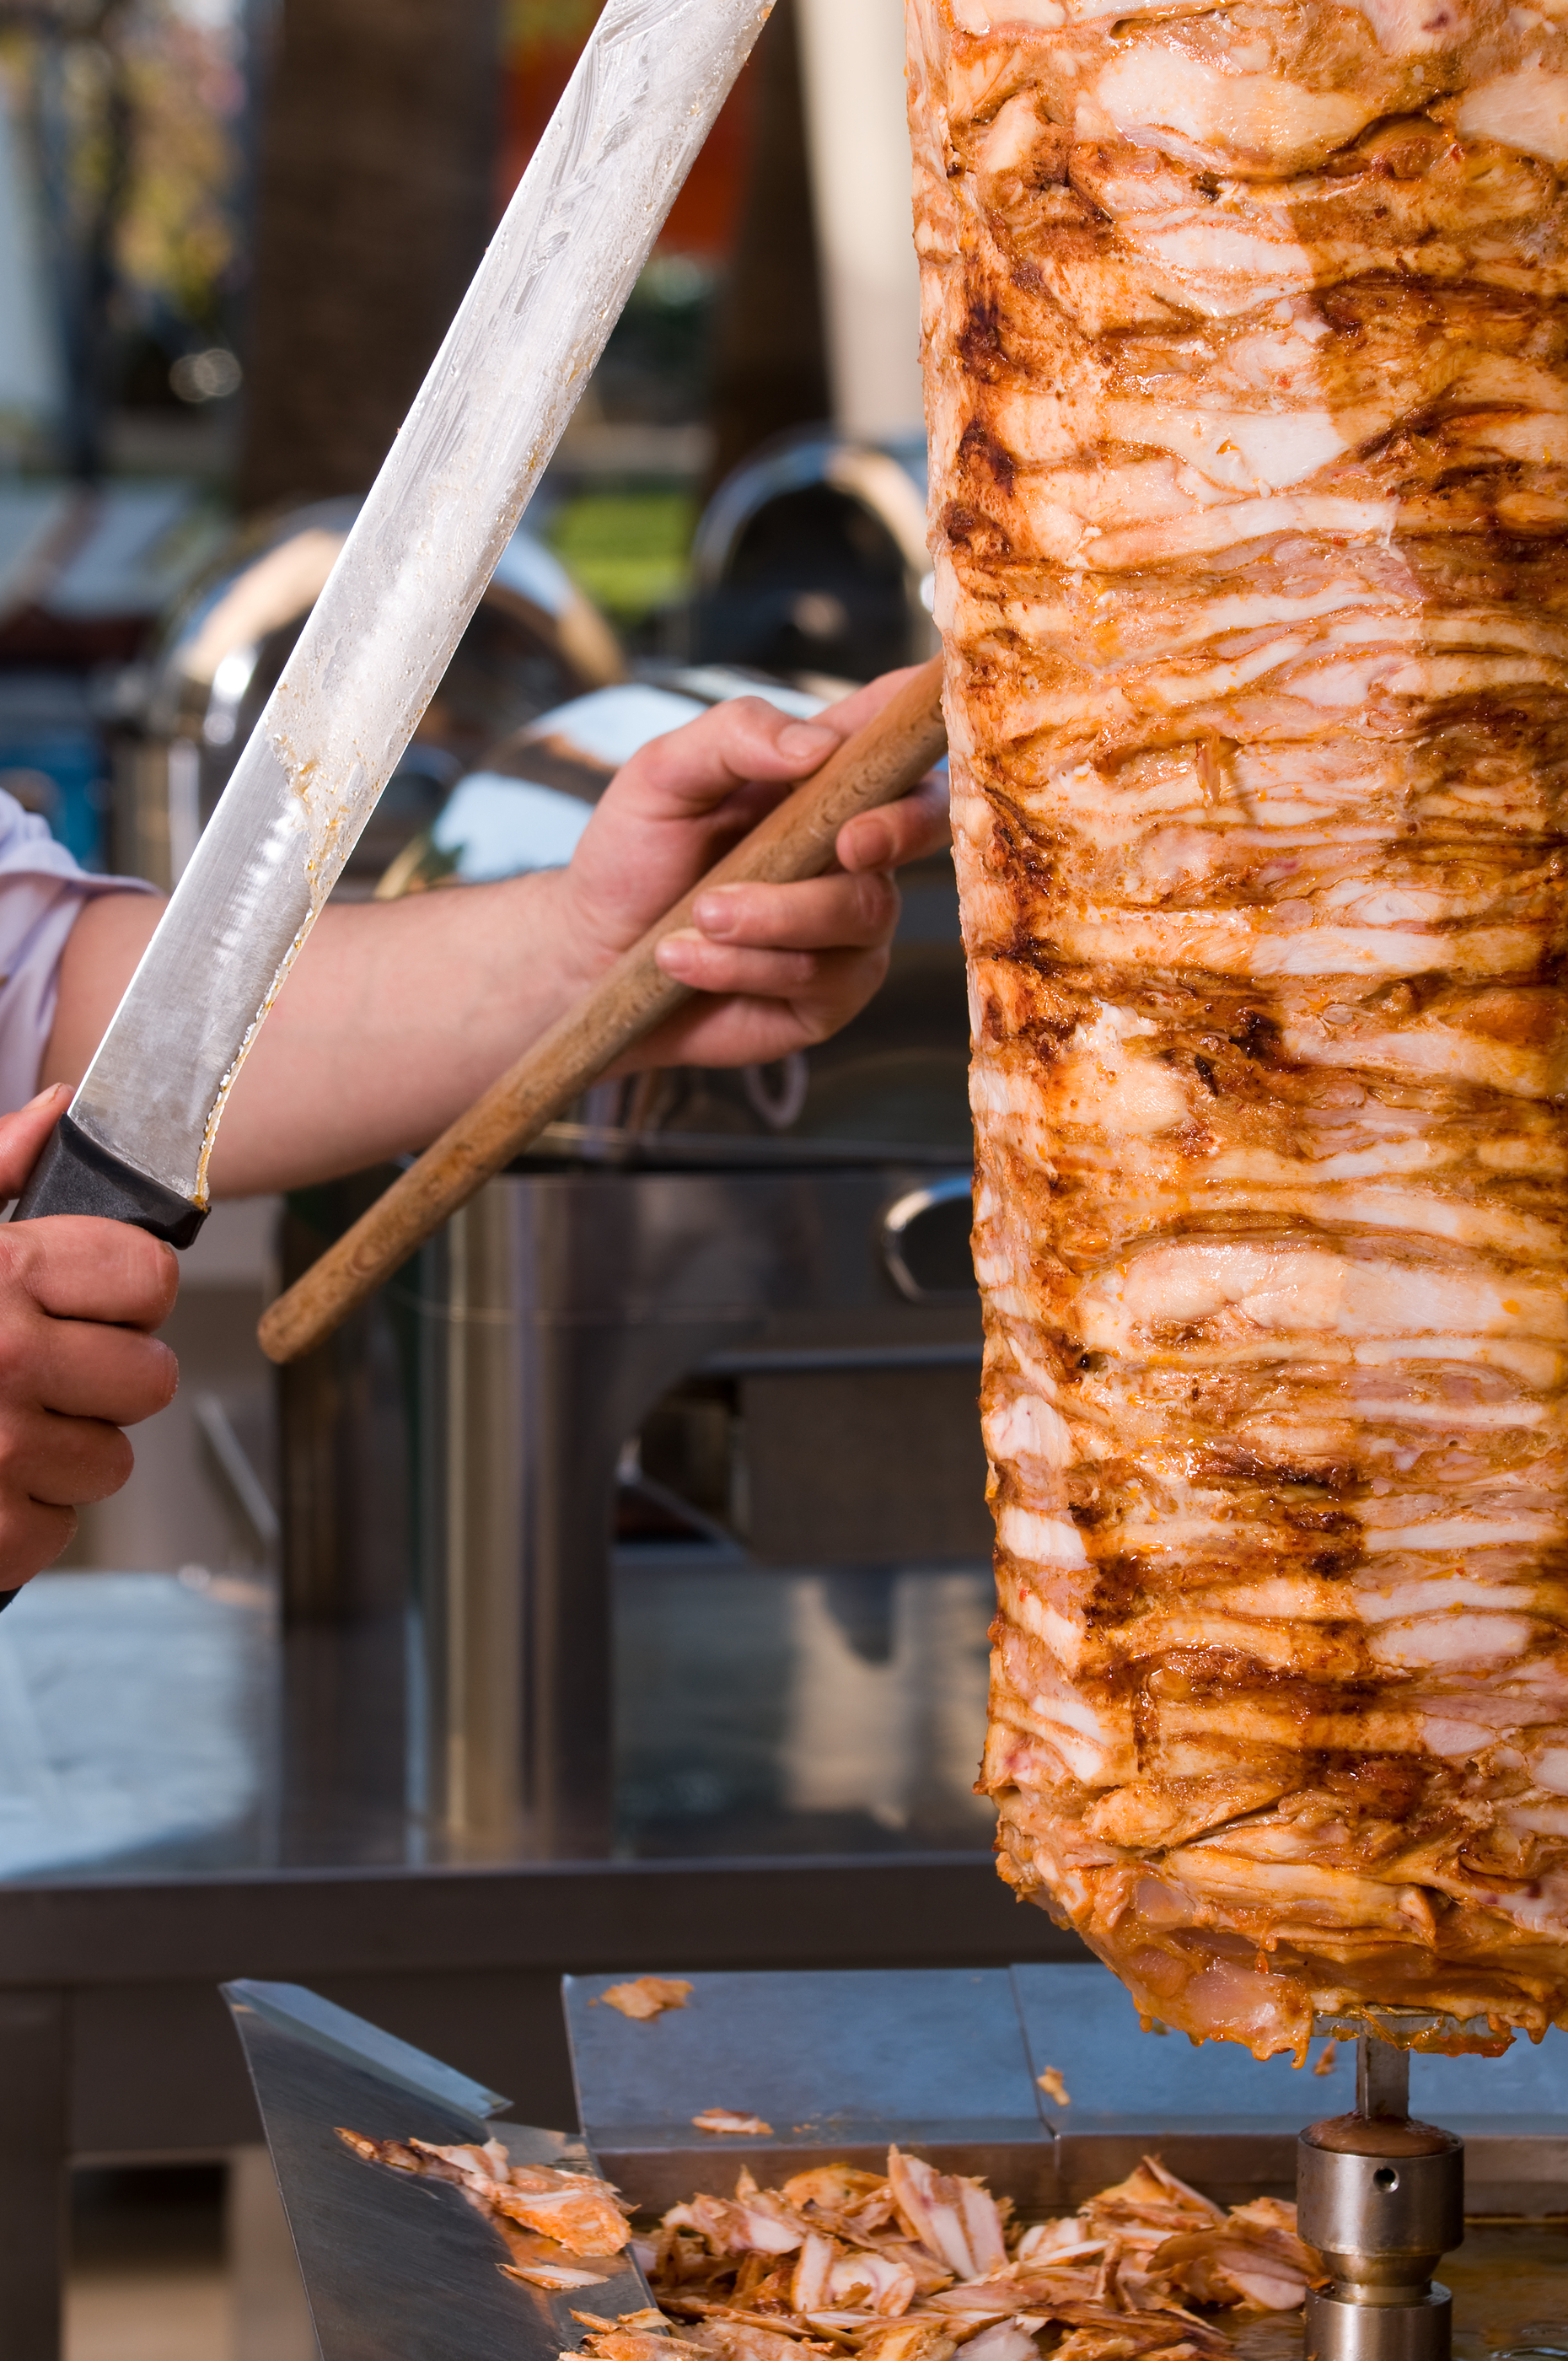 Chef slicing Turkish doner kebab.jpg